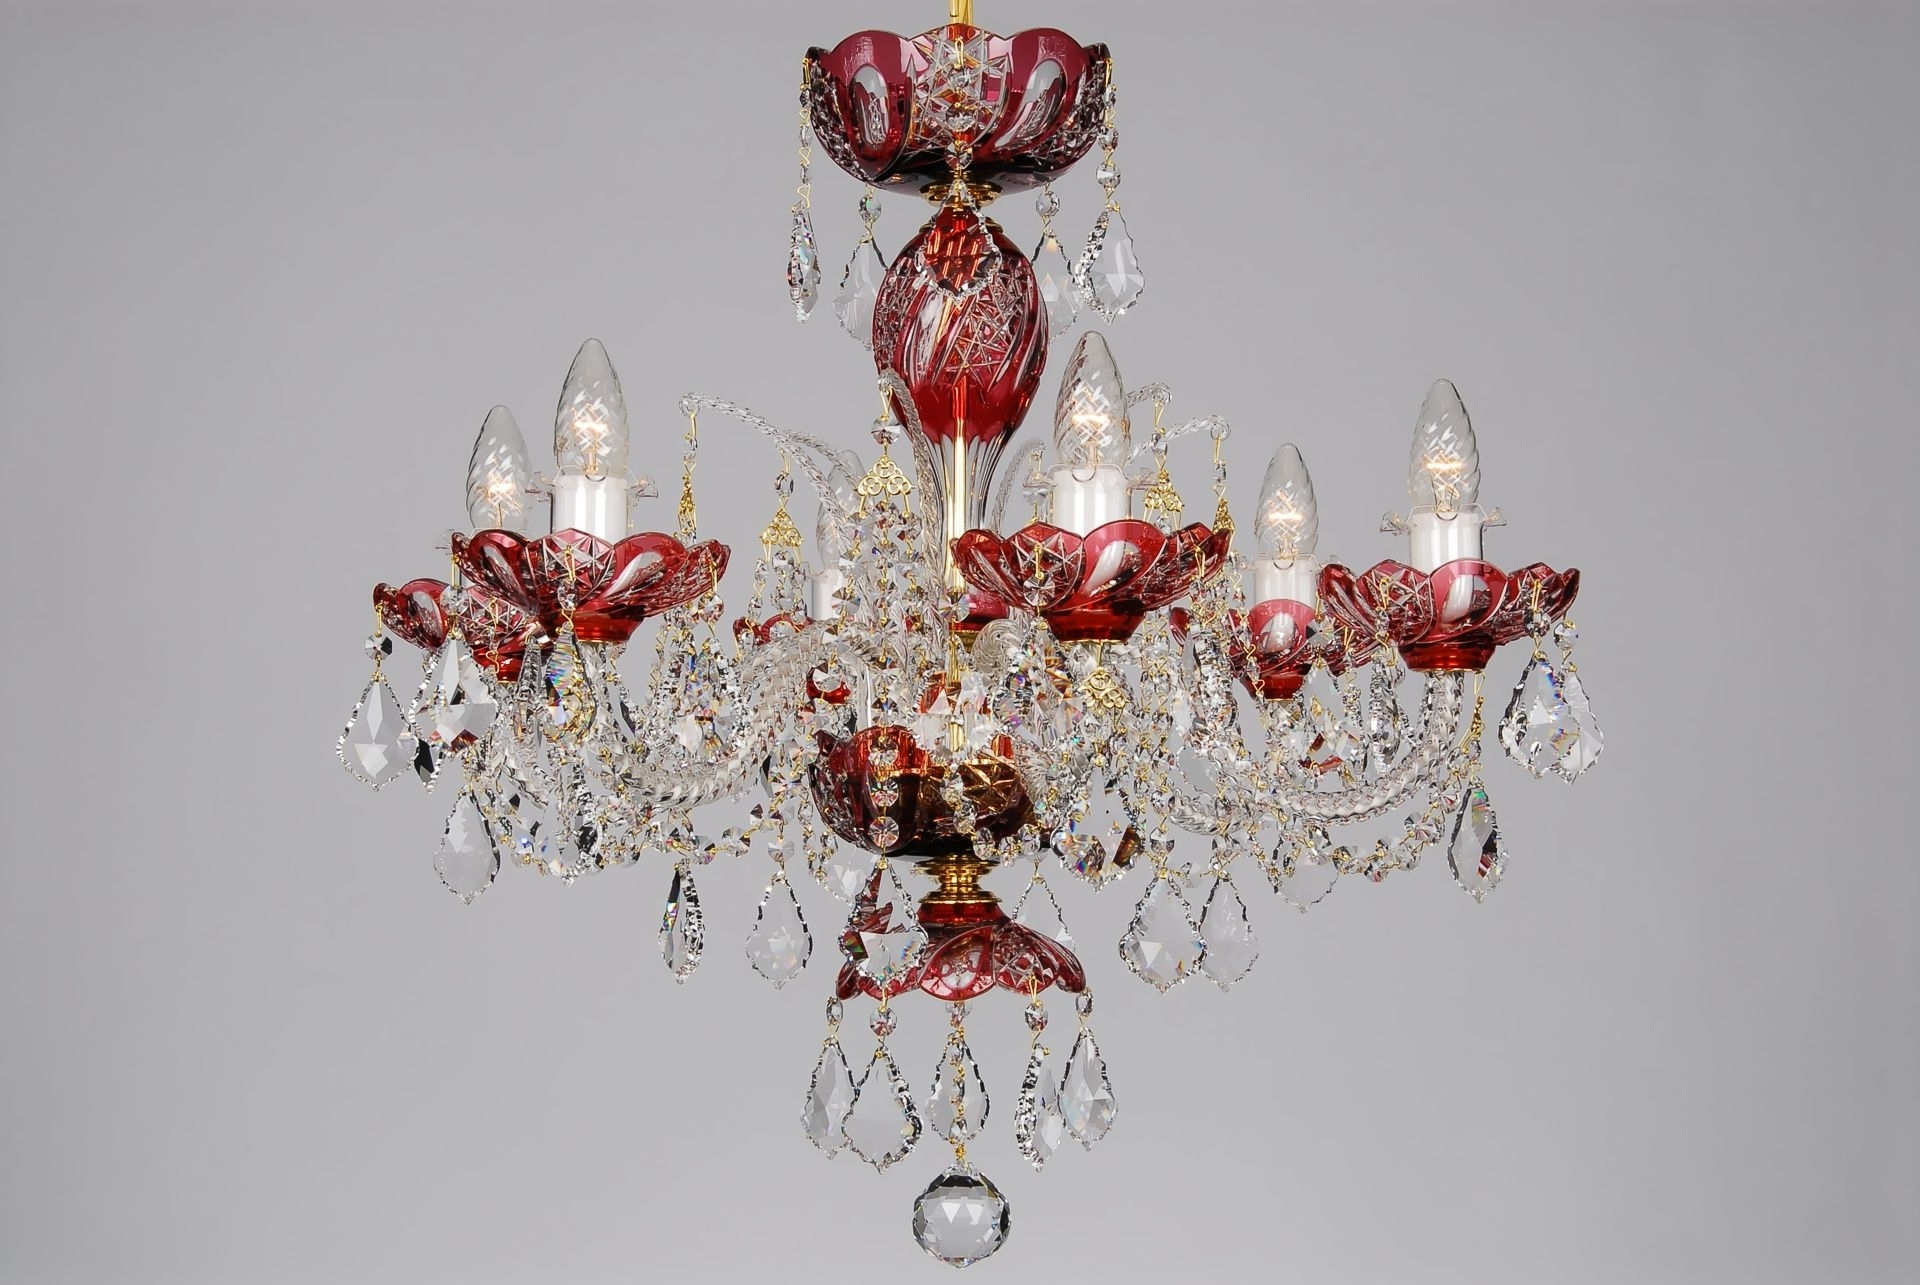 Best And Newest Red Chandeliers Inside A Small Red Crystal Chandelier Decorated With Swarovski Trimmings (View 12 of 20)